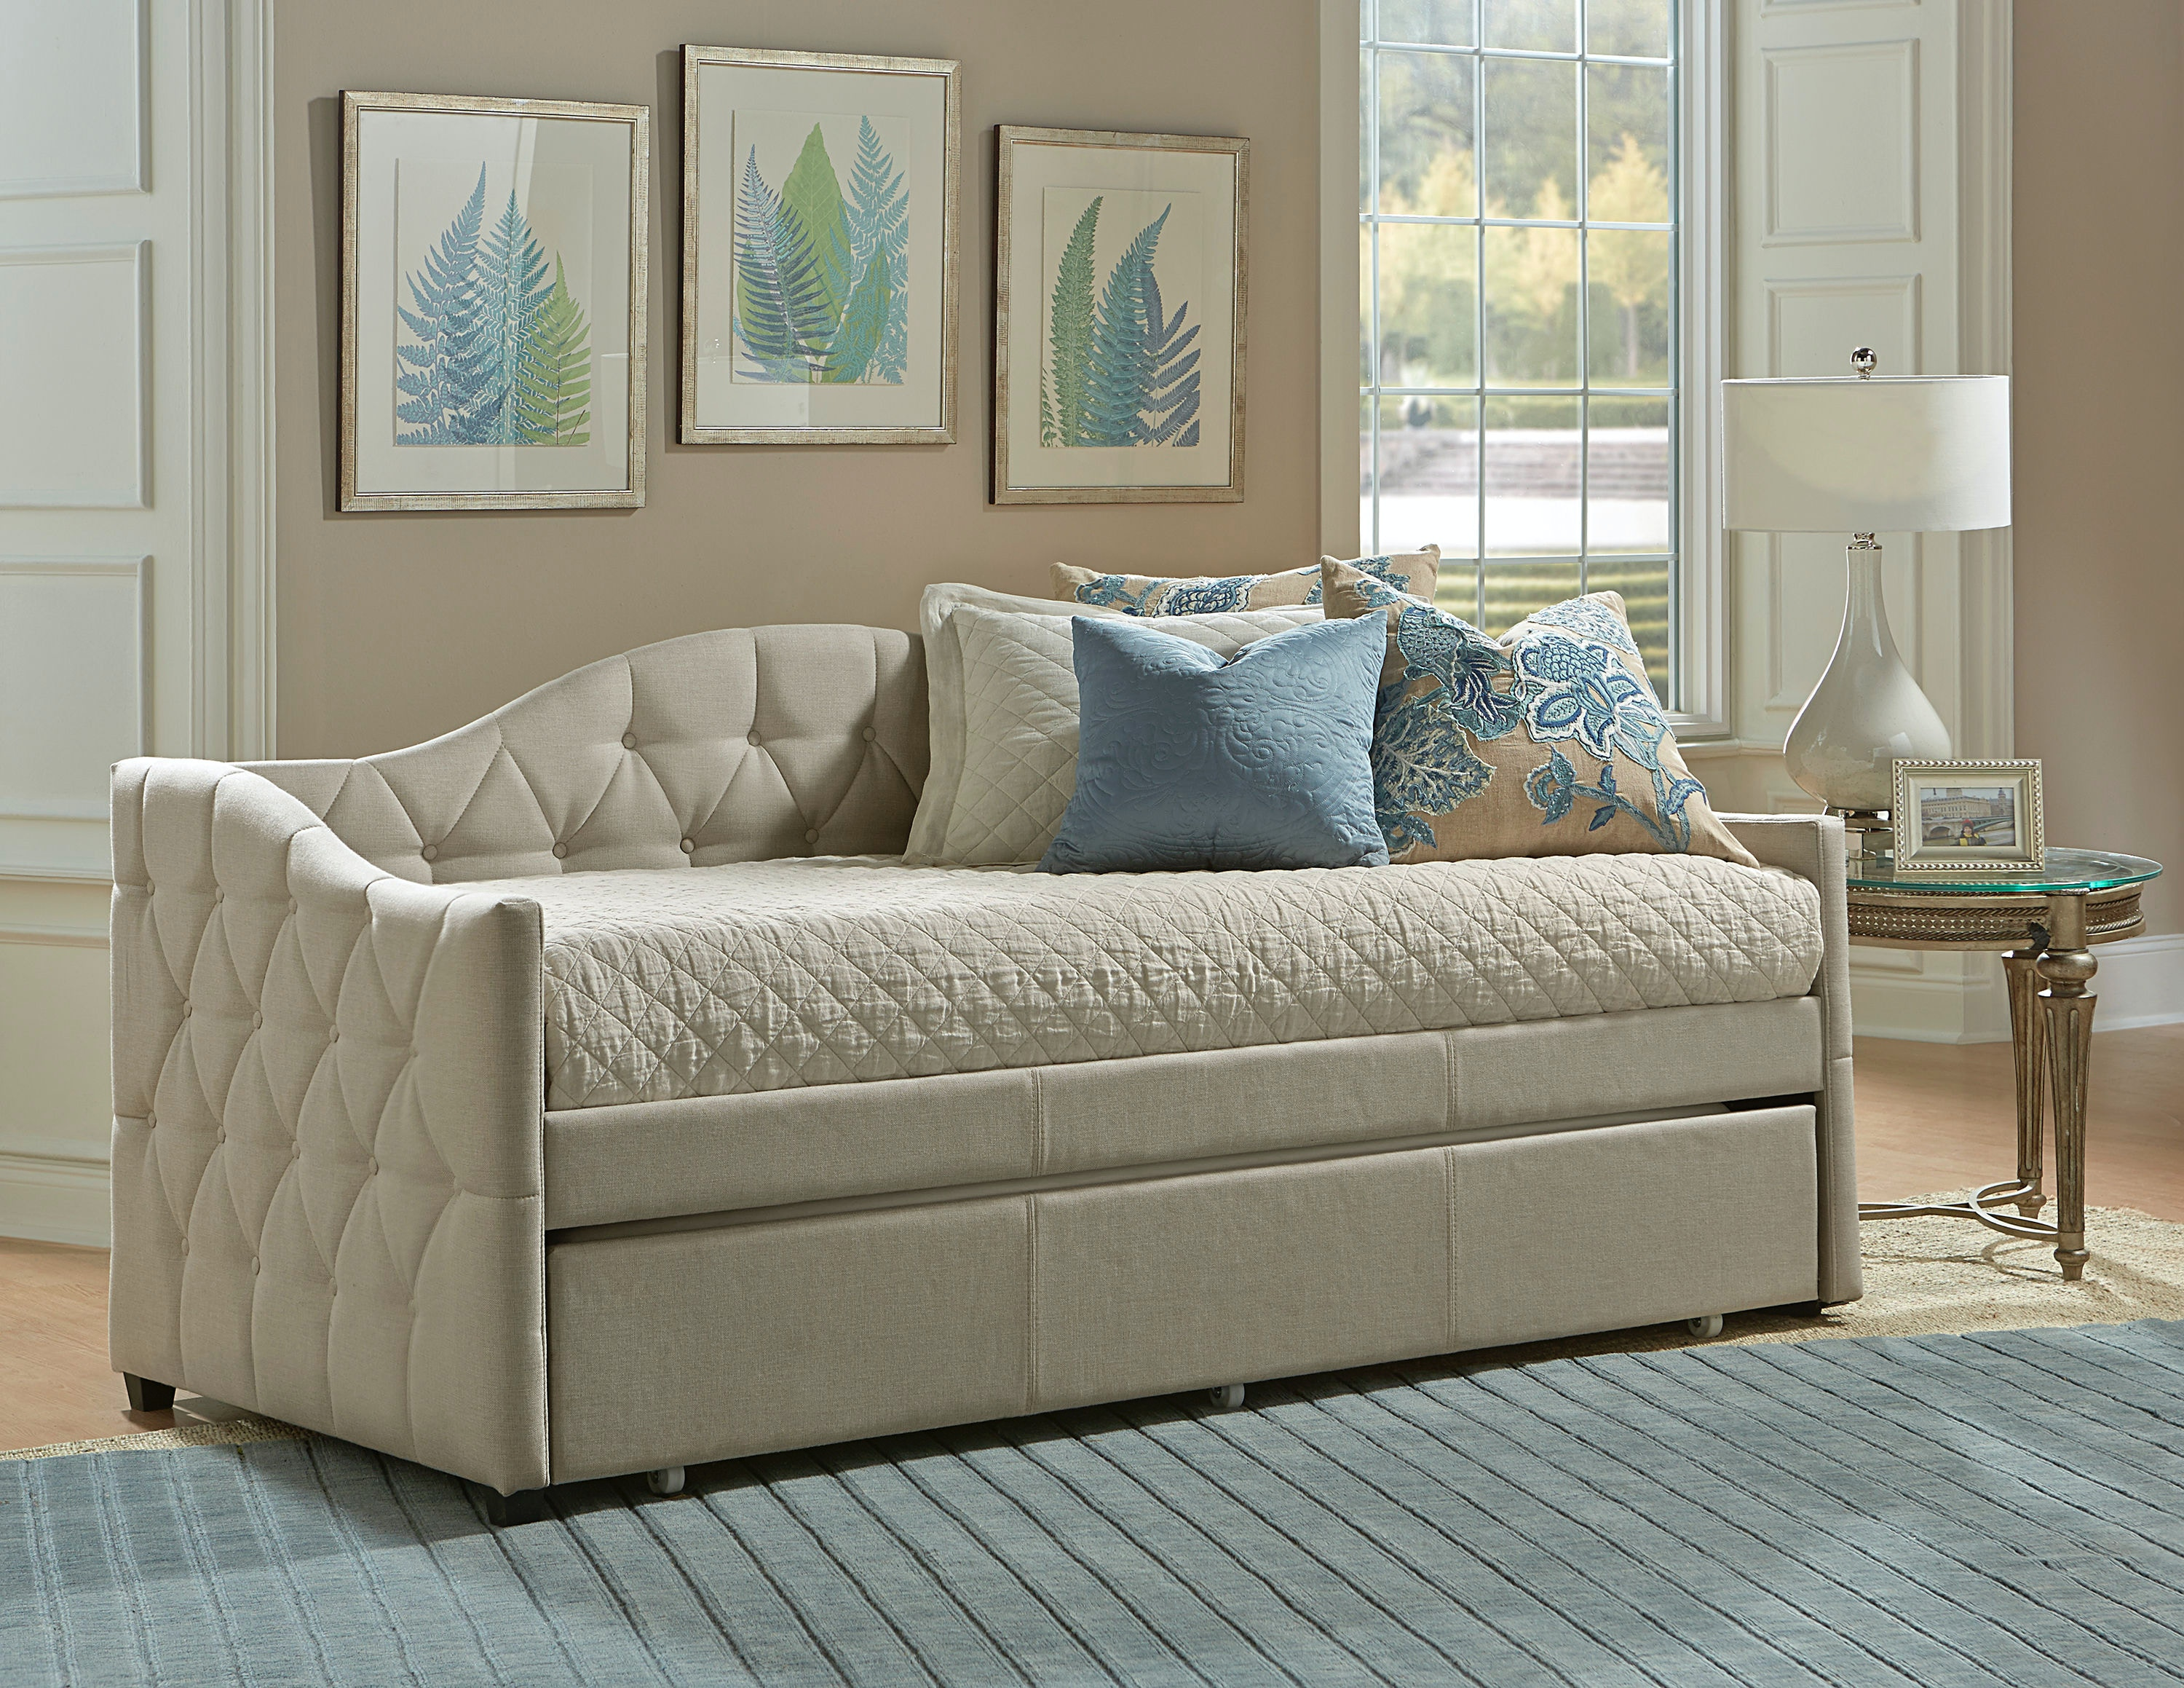 High Quality Hillsdale Furniture Bedroom Jamie Daybed Back 1125 020 At Furniture  Plus Inc.